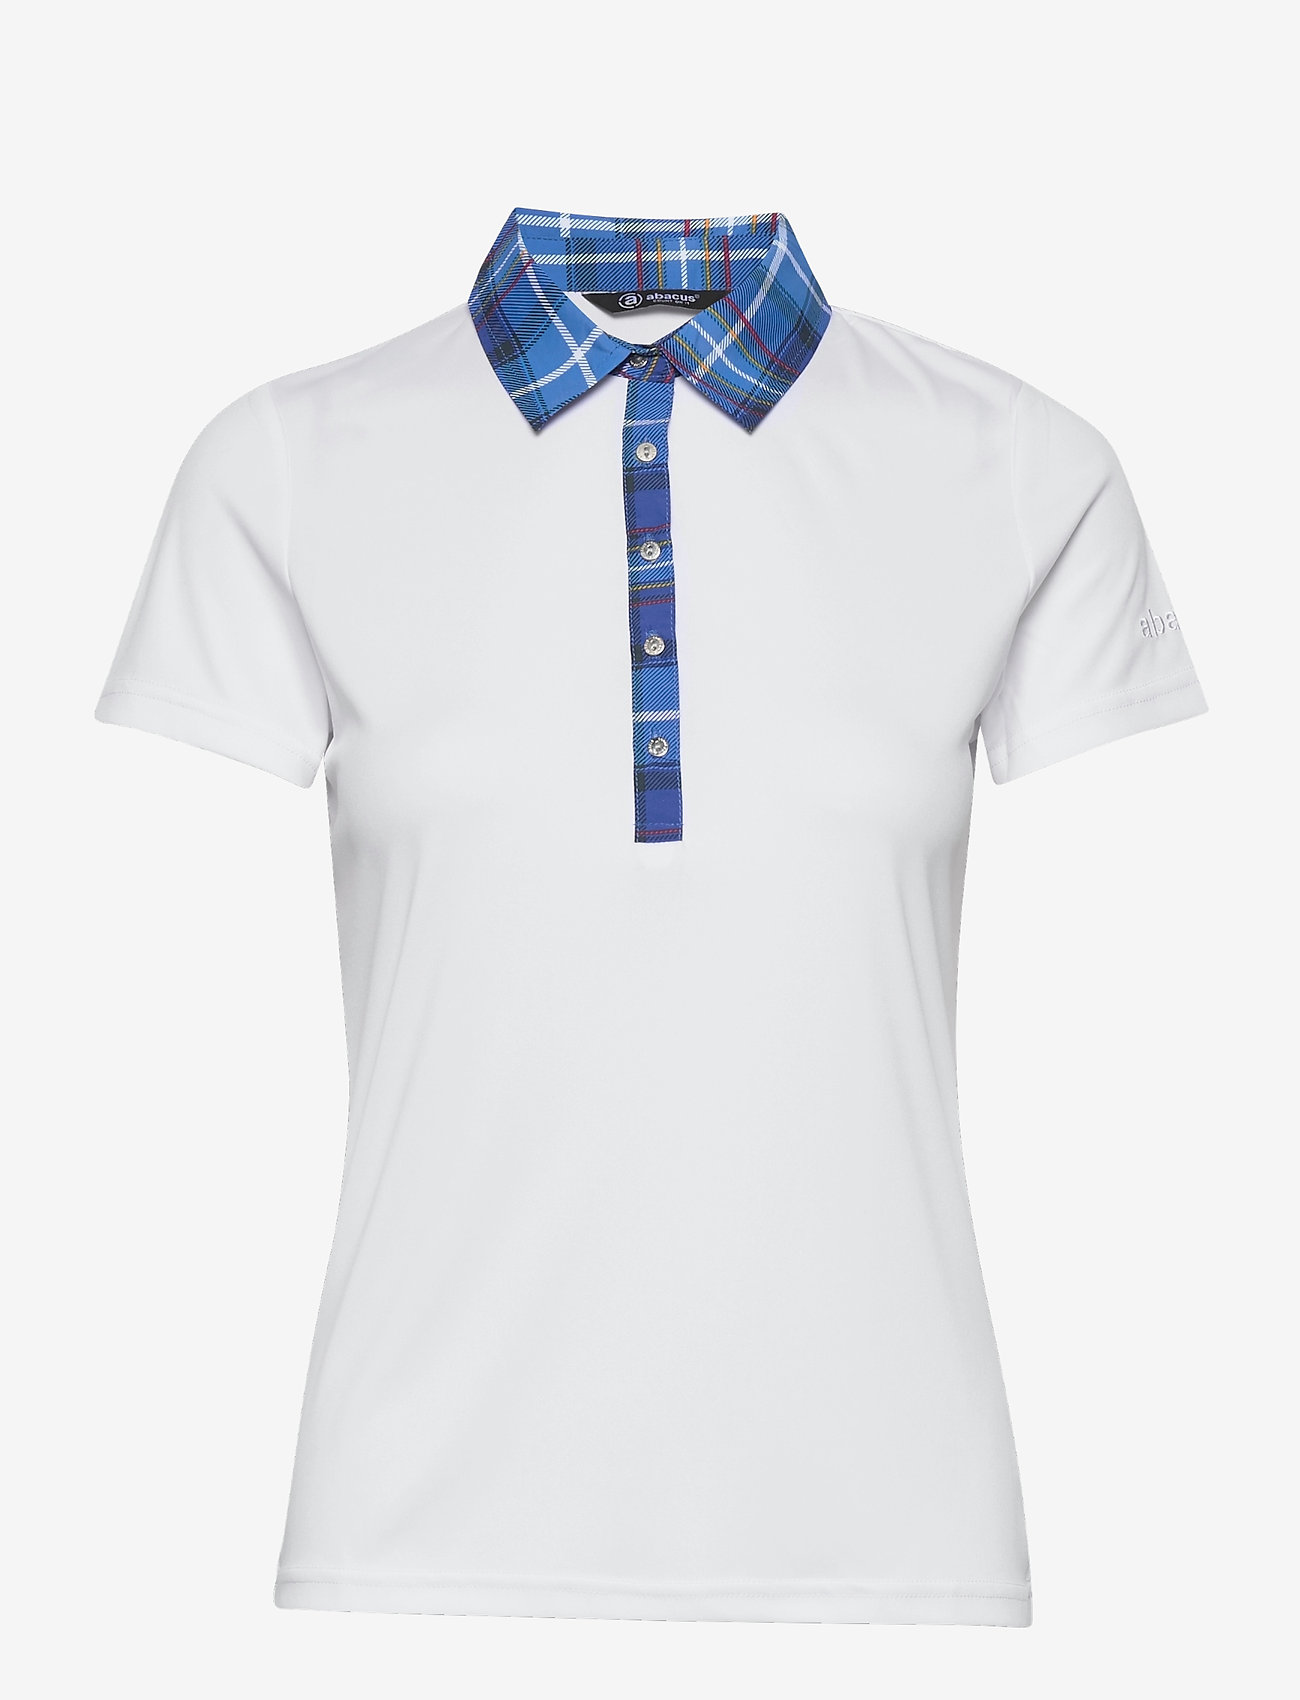 Abacus - Lds players crail polo - polo's - white - 0